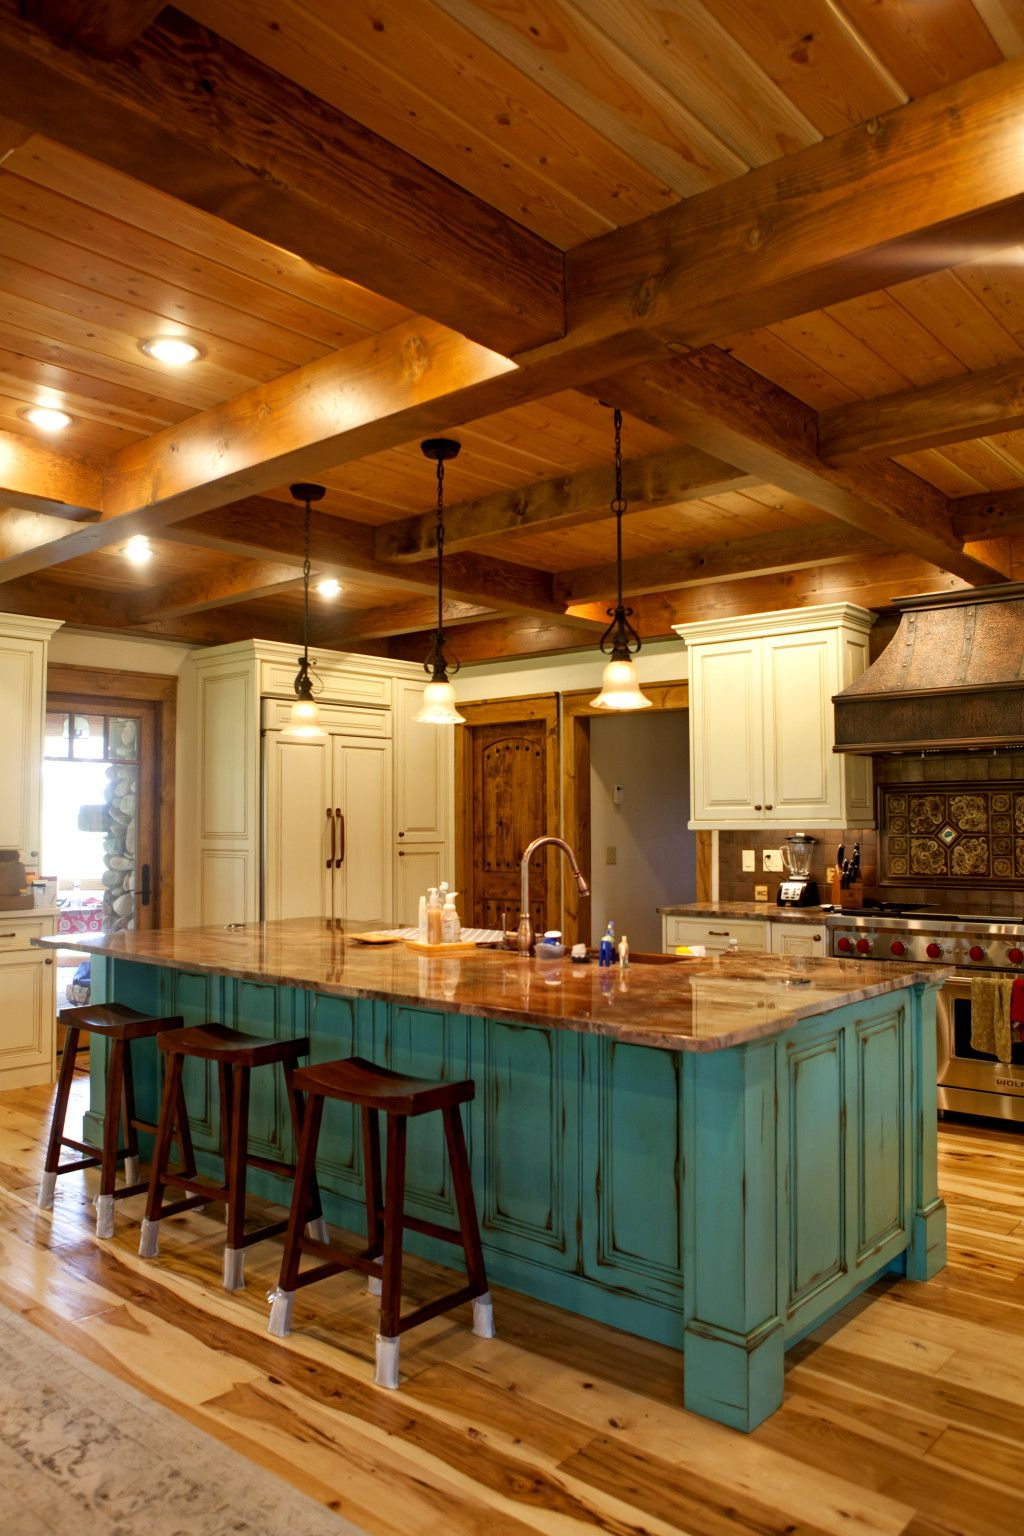 Top 20 Luxury Log, Timber Frame, And Hybrid Homes Of 2015 From The Home  Decor Discovery Community At Www.DecoandBloom.com